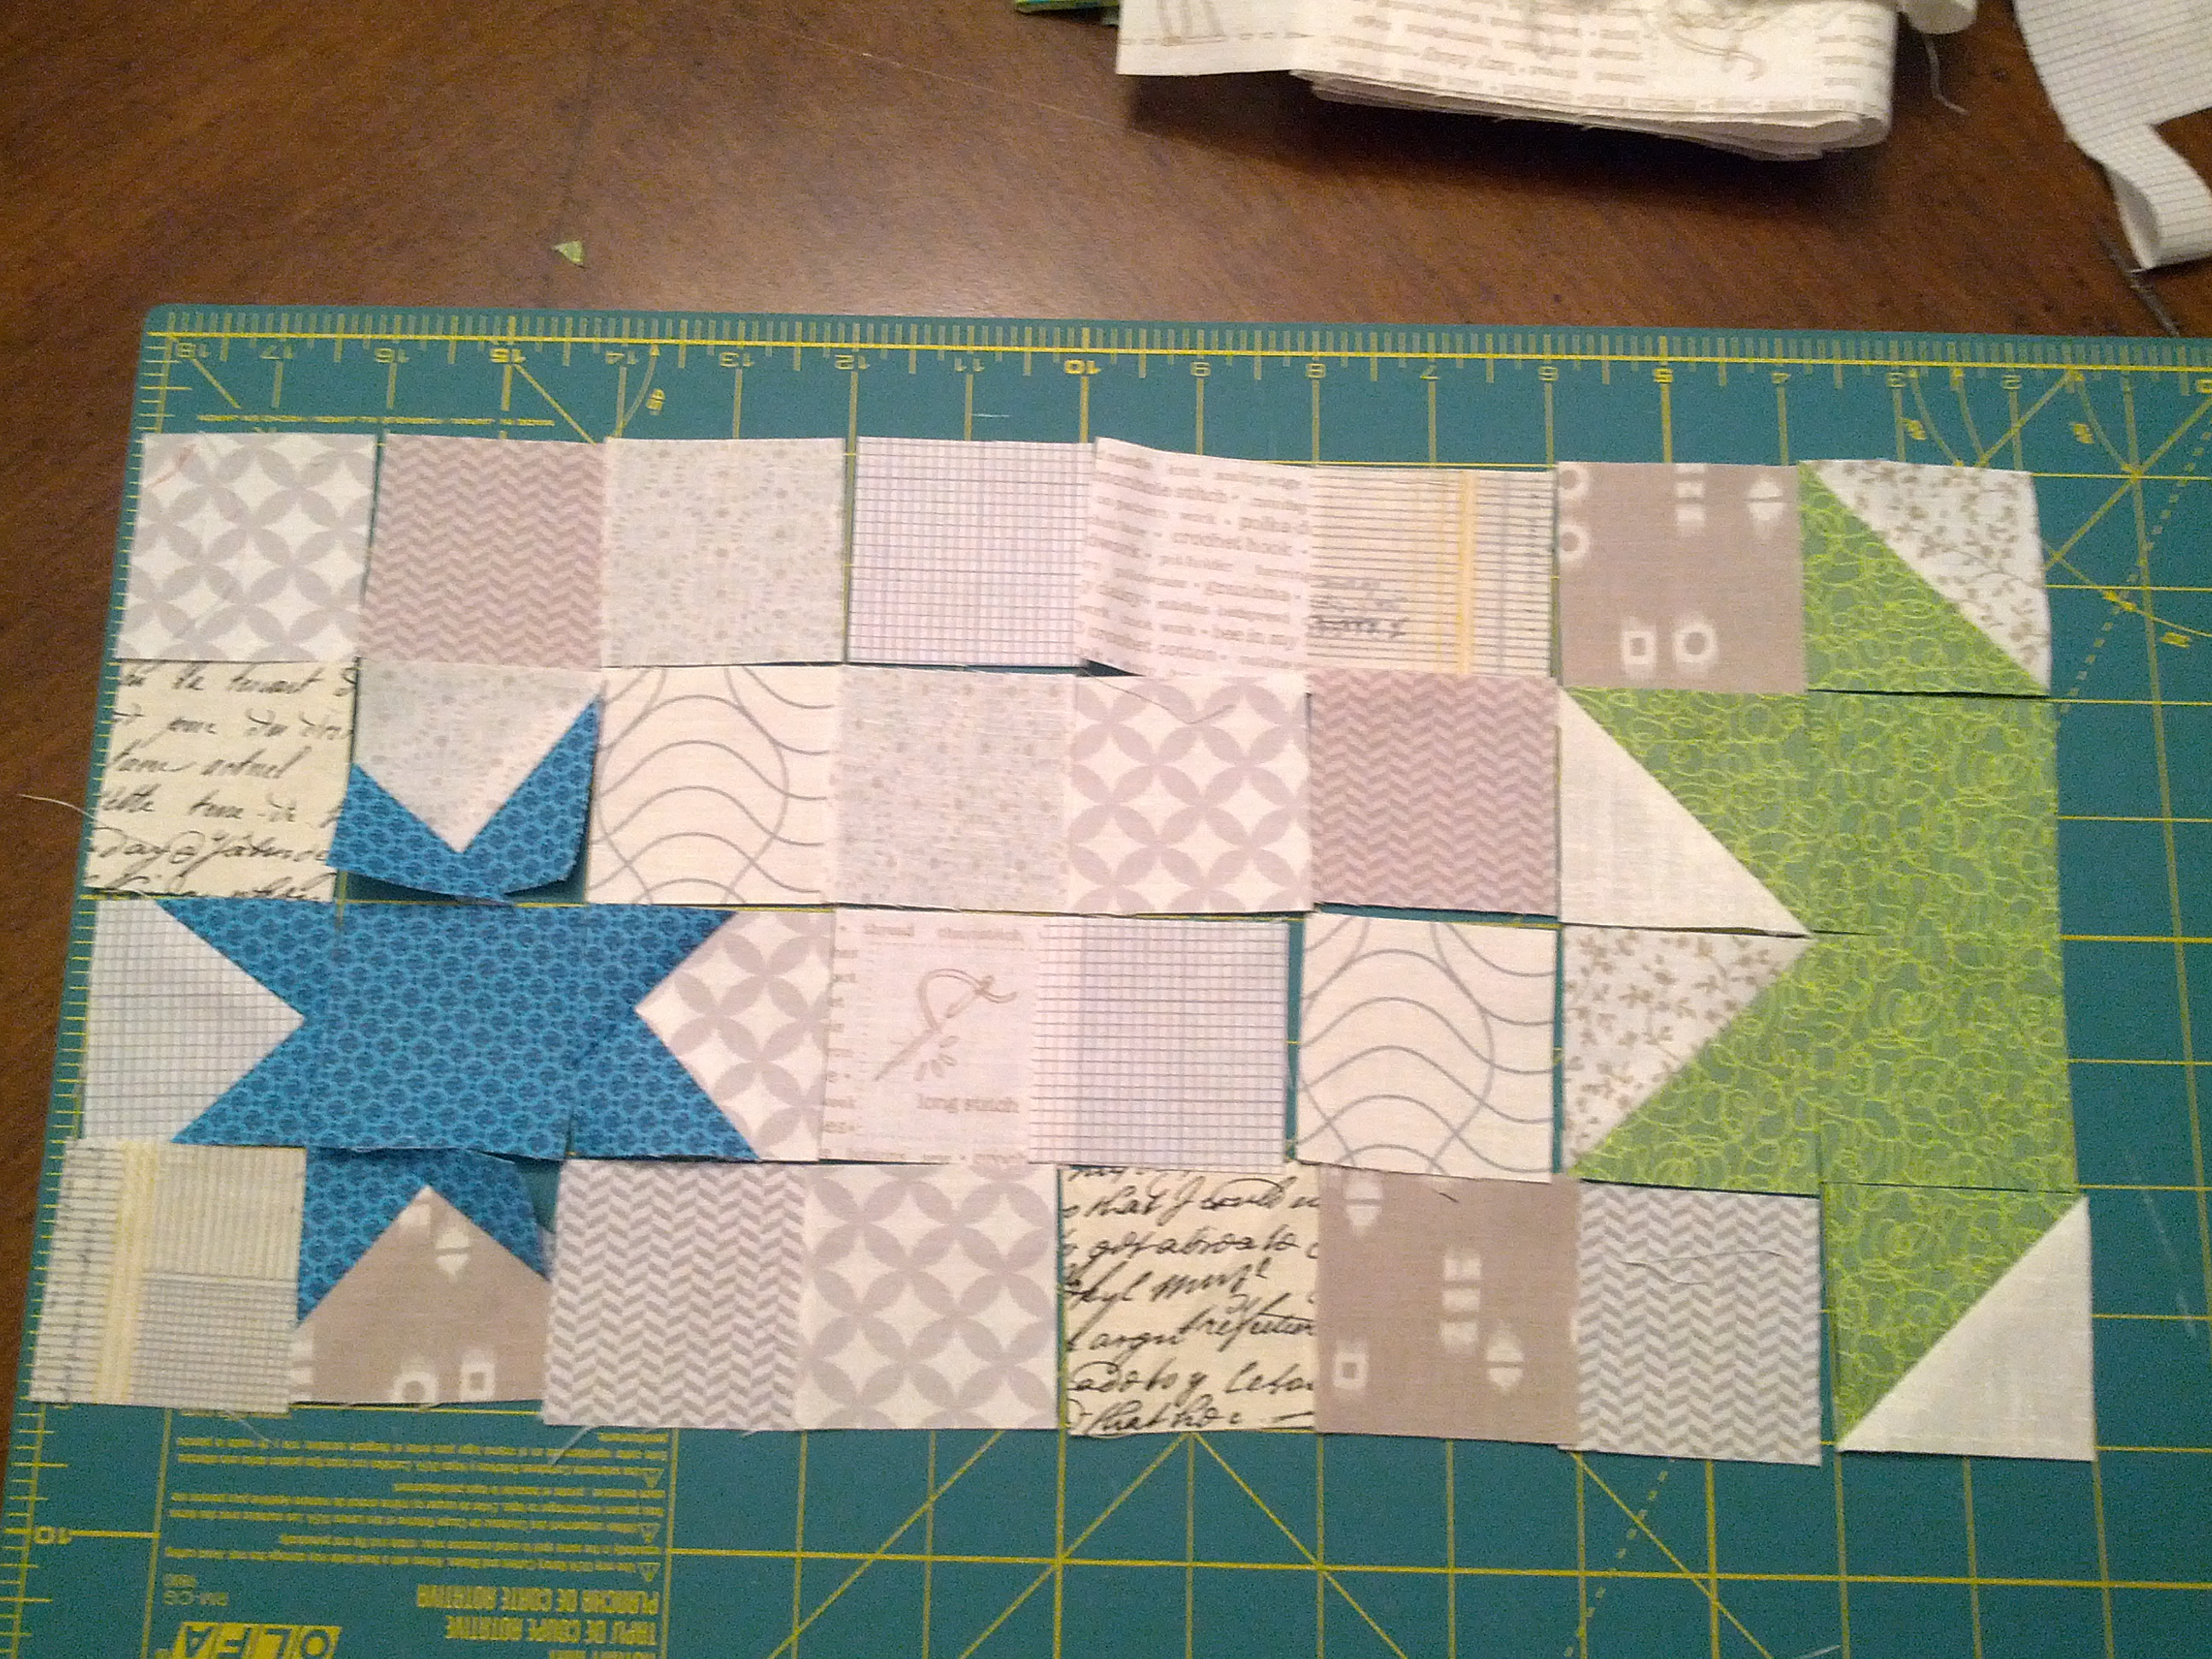 Laying out patchwork